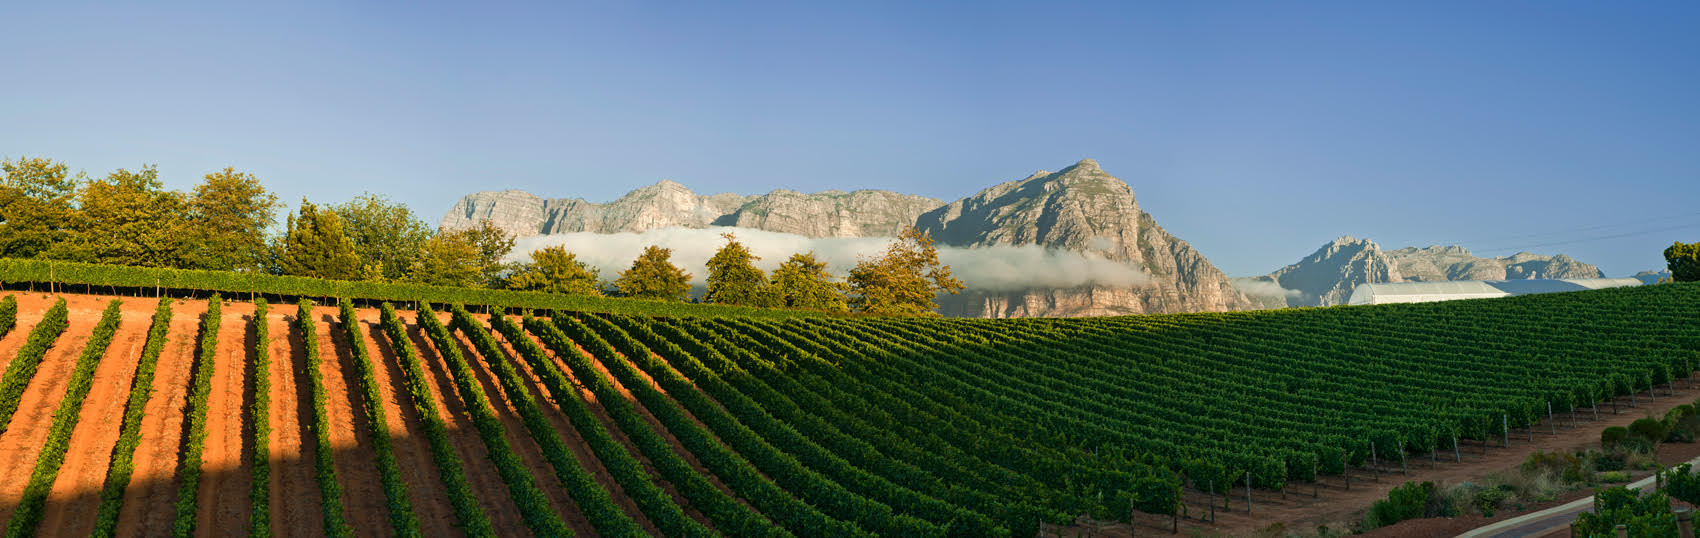 Spectacular view of the vineyards at Stellenbosch